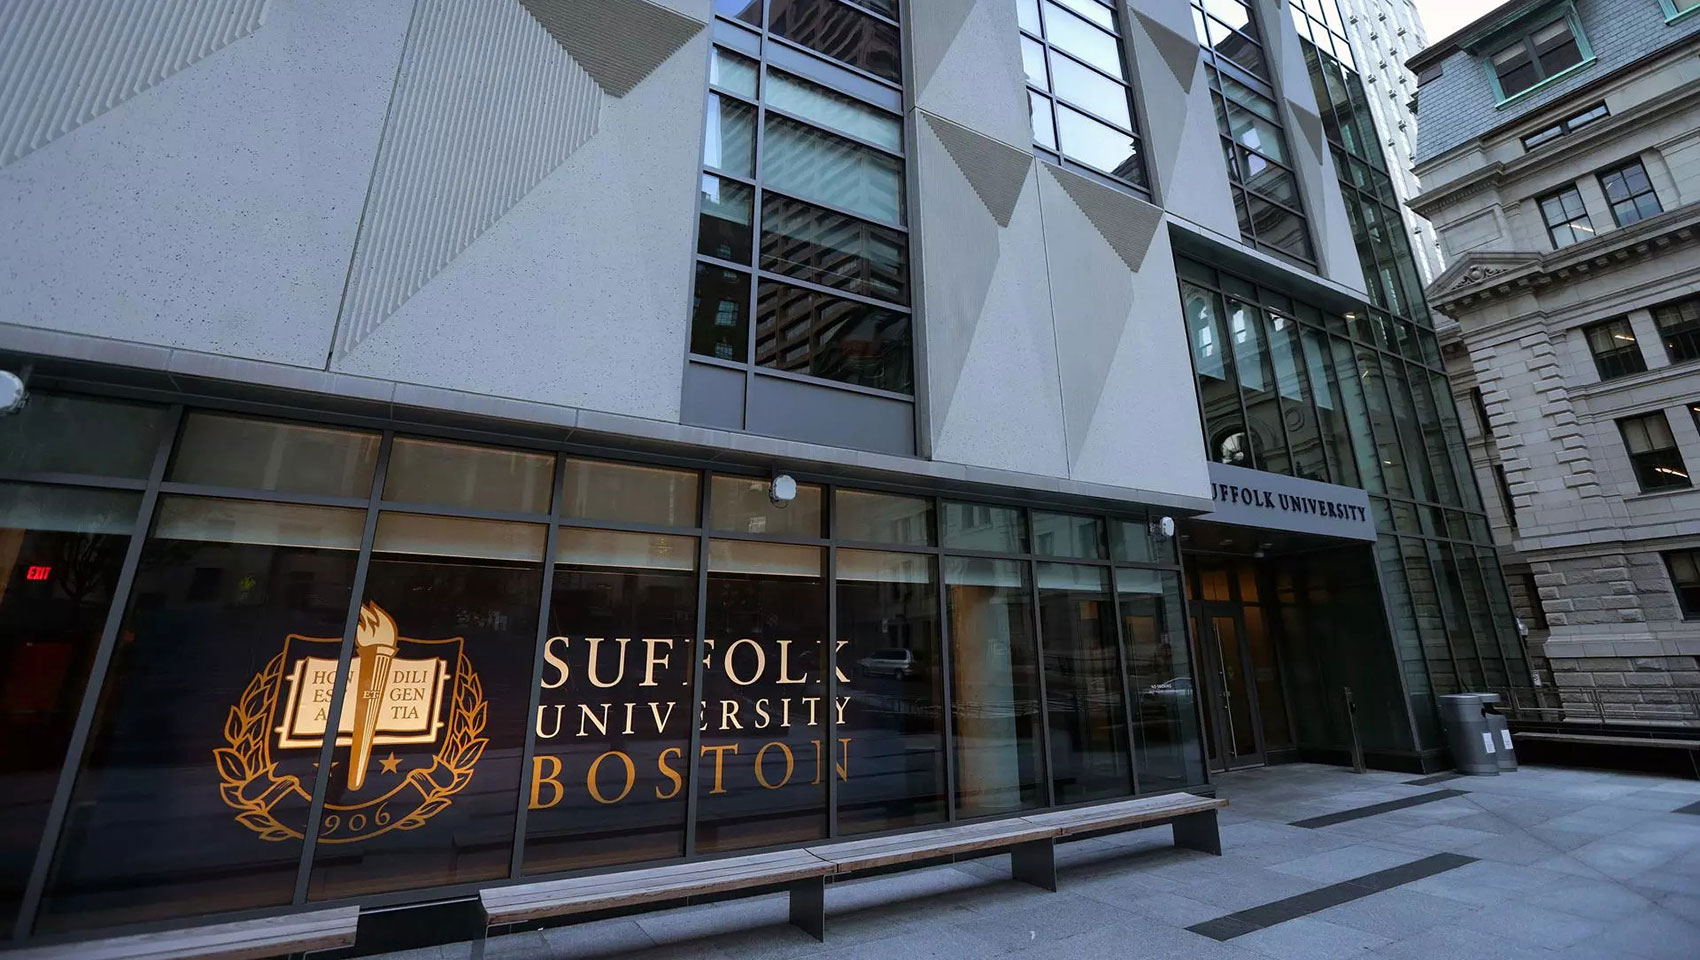 Suffolk University Entrance